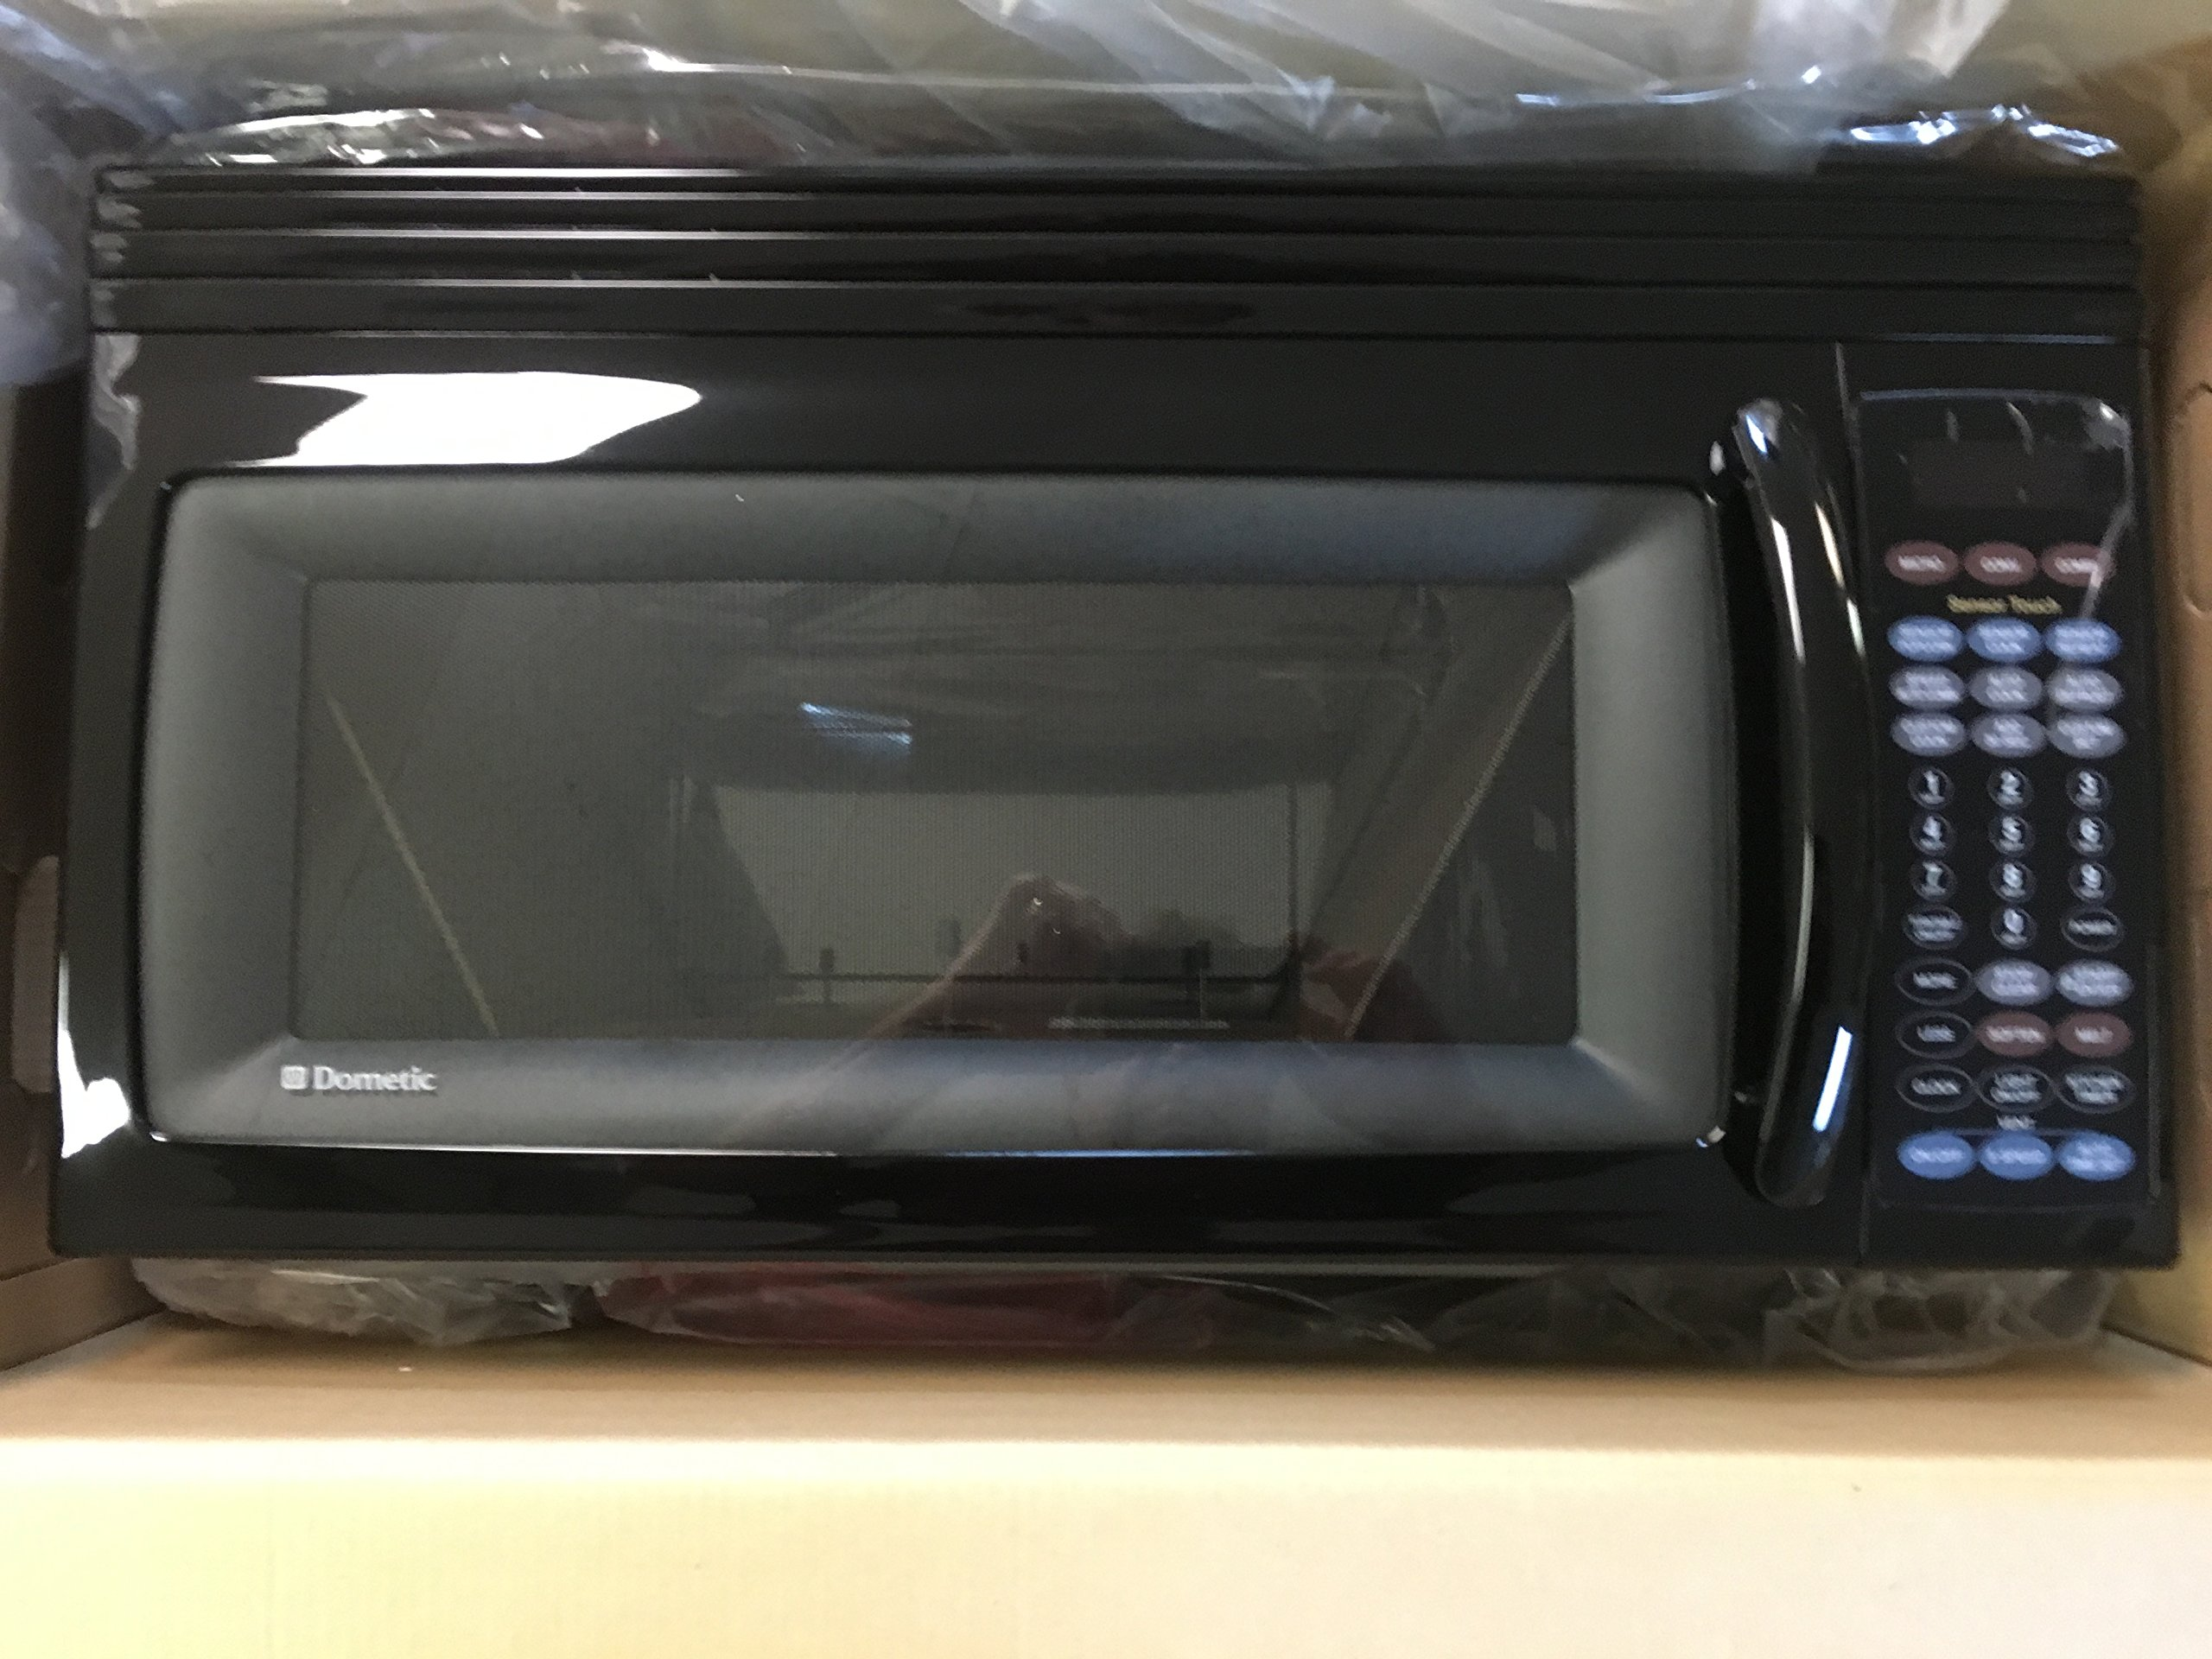 Dometic Microwave Convection Oven Partsbestmicrowave